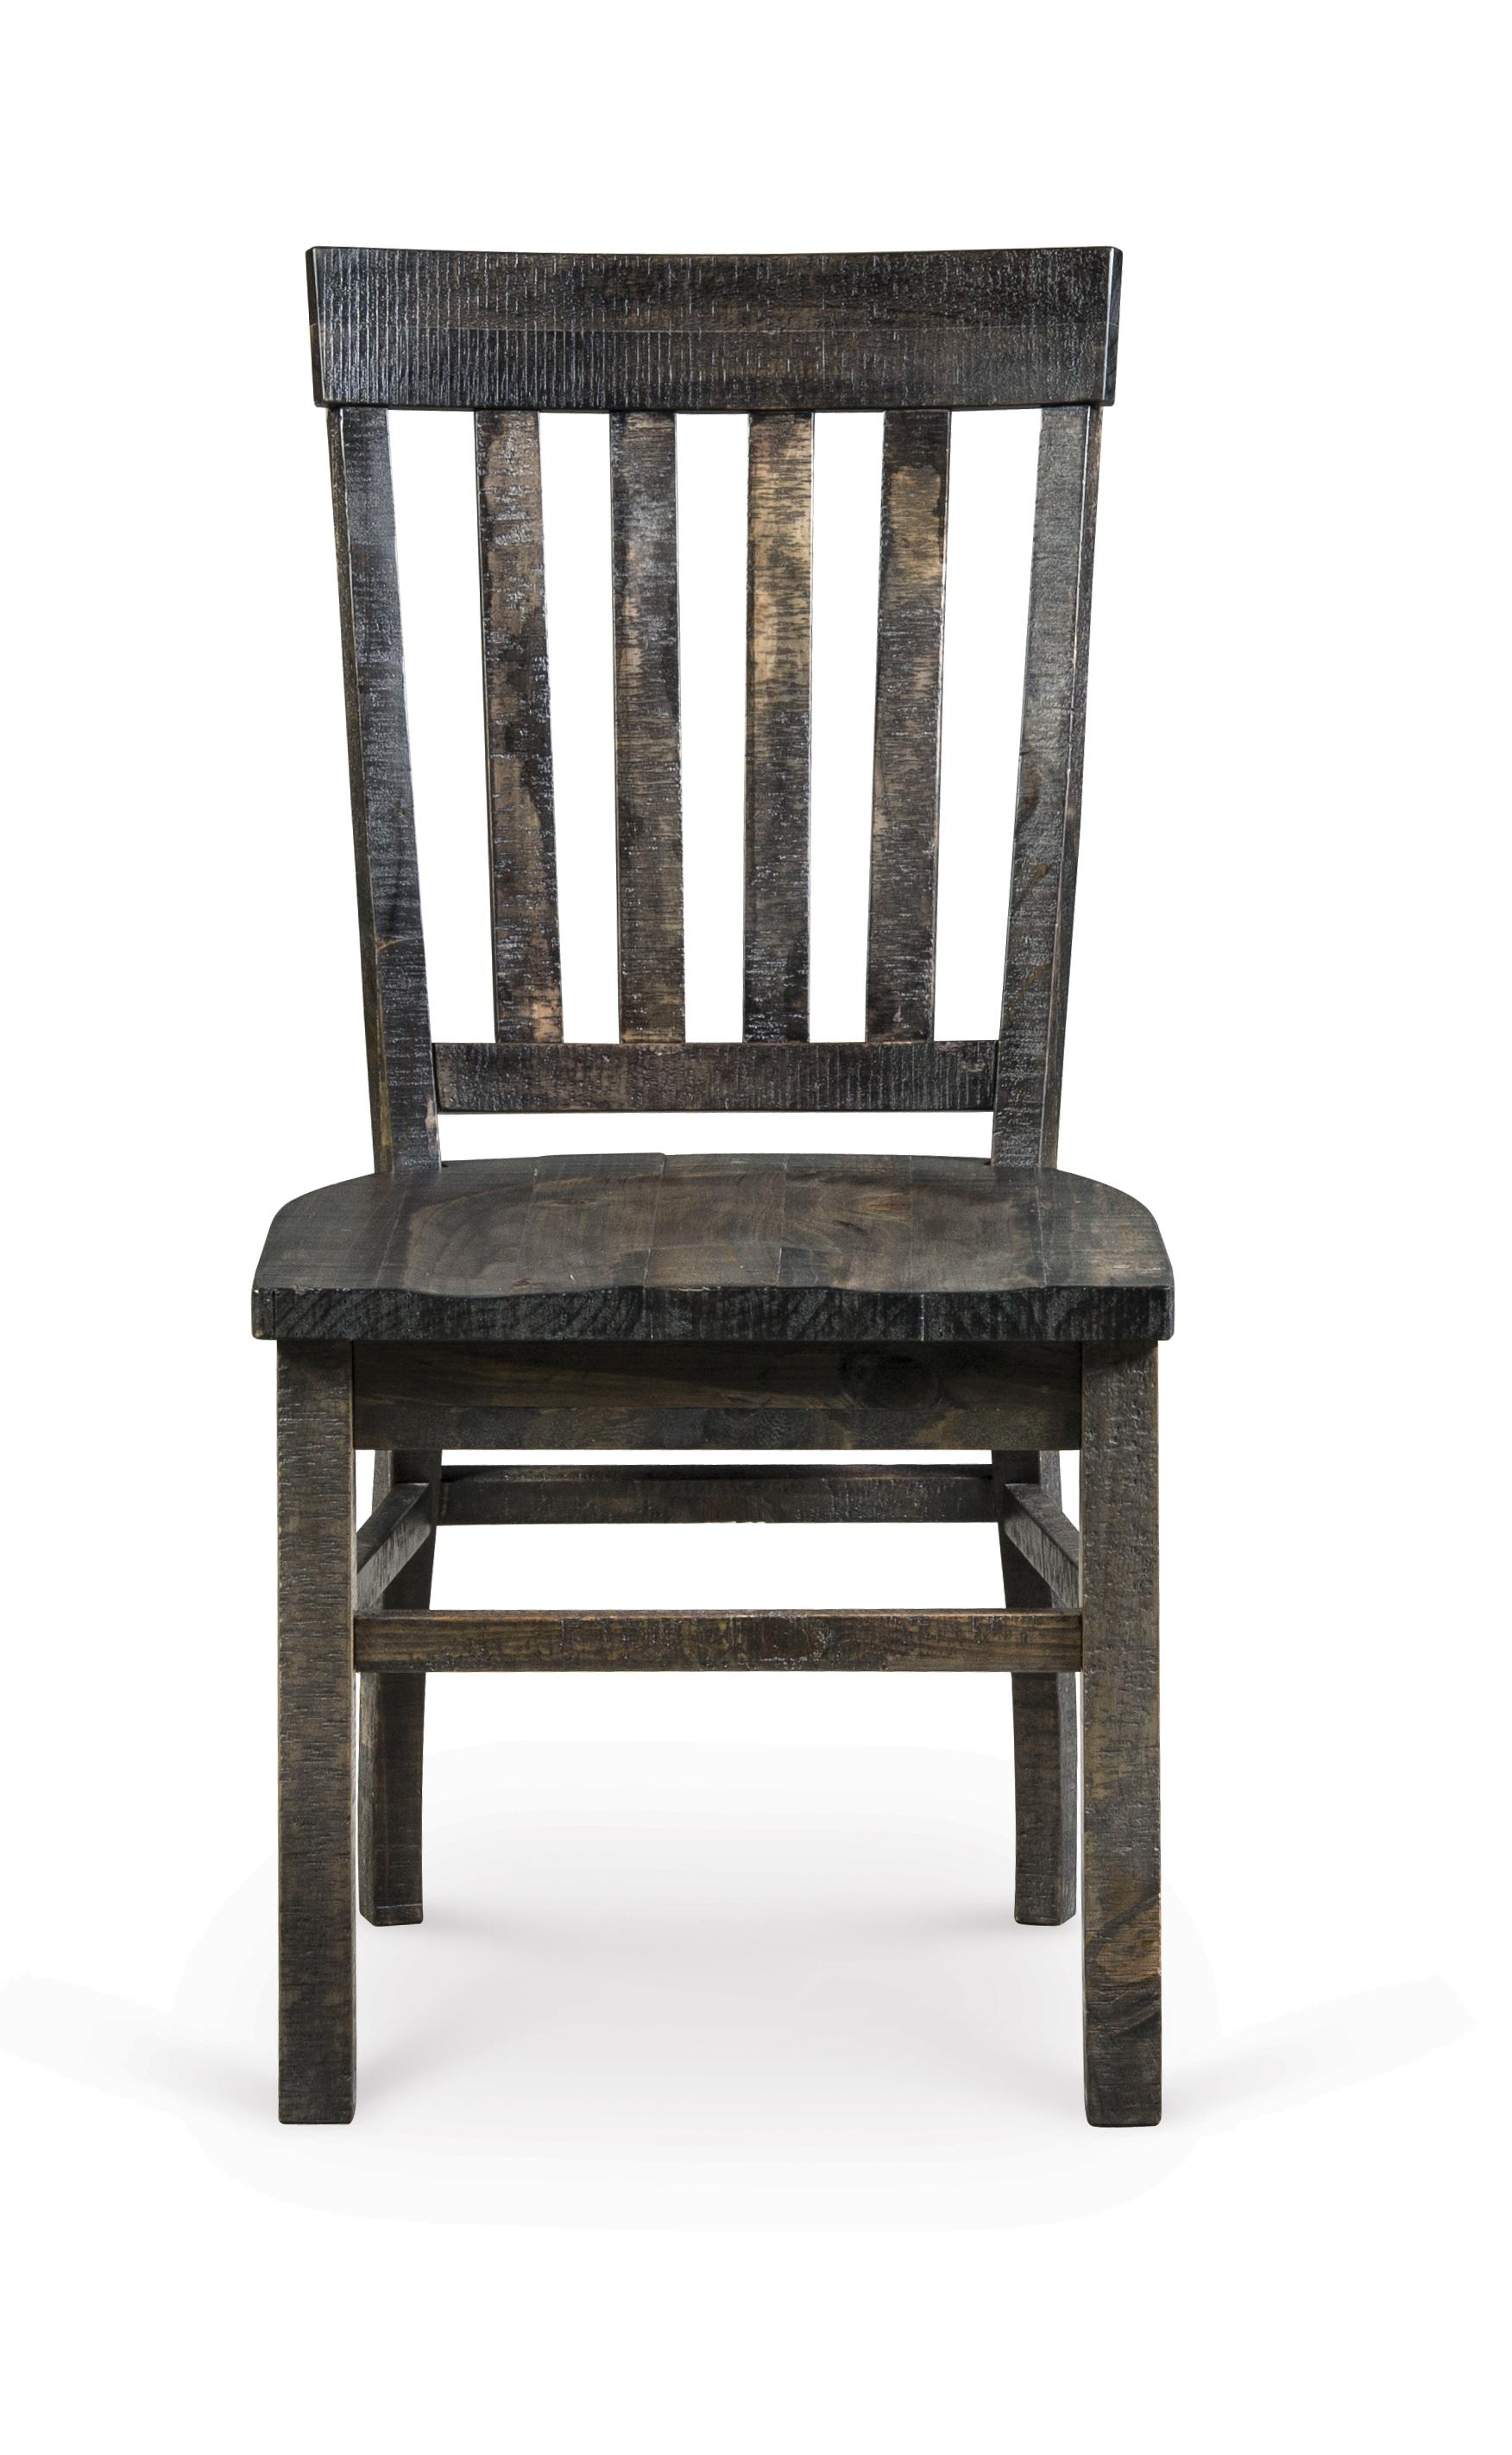 Turnin Dining Chair at Walker's Furniture